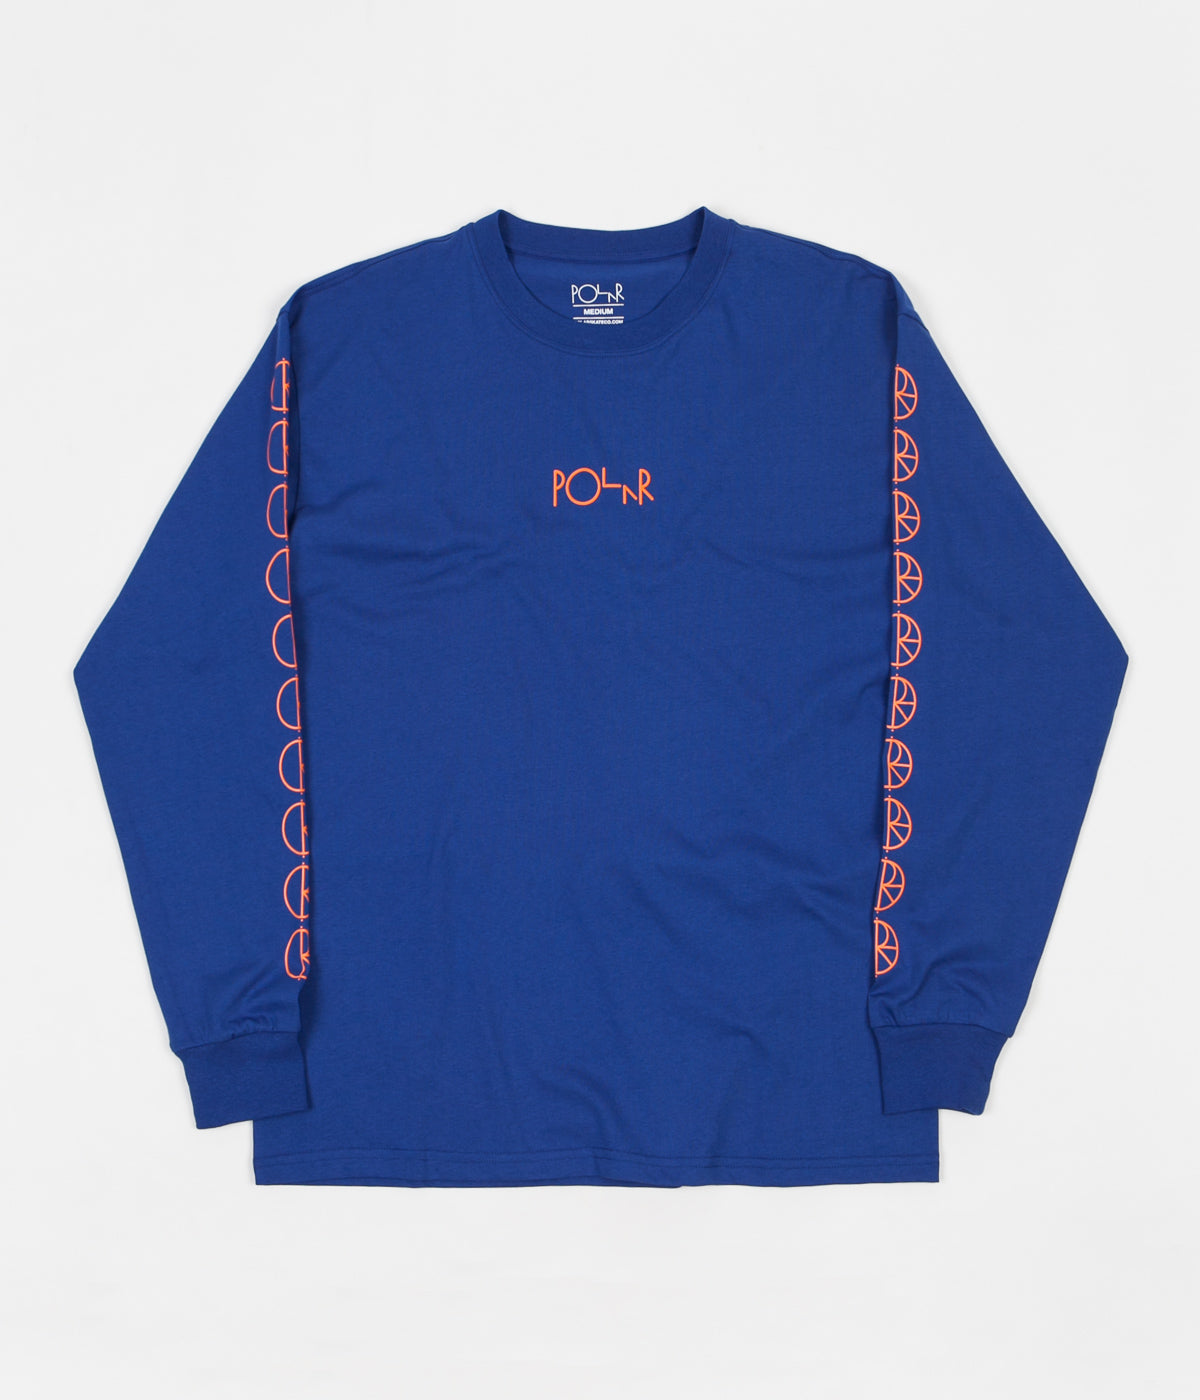 Polar Racing Long Sleeve T-Shirt -  80's Blue